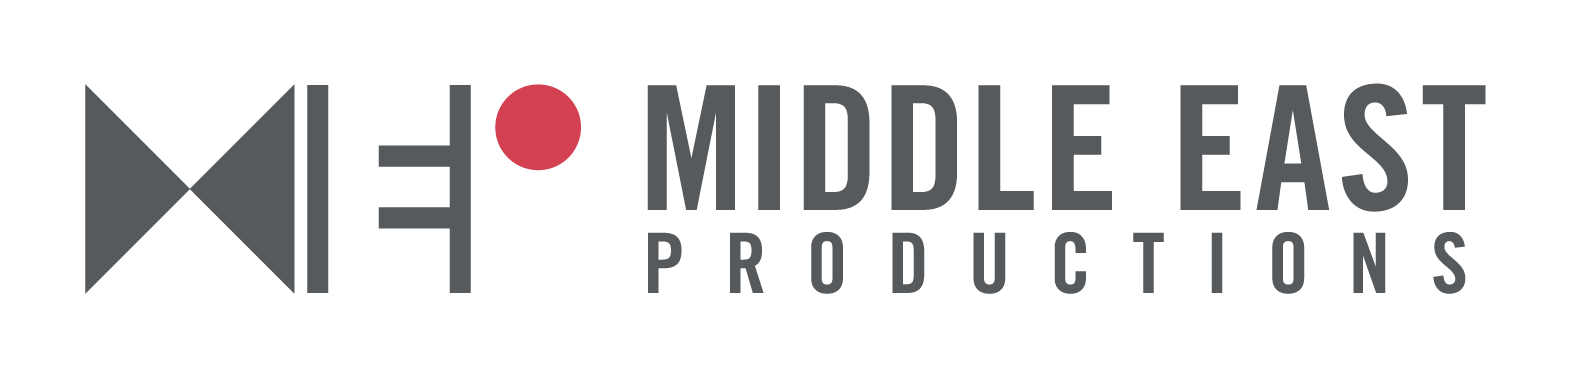 Middle East Productions